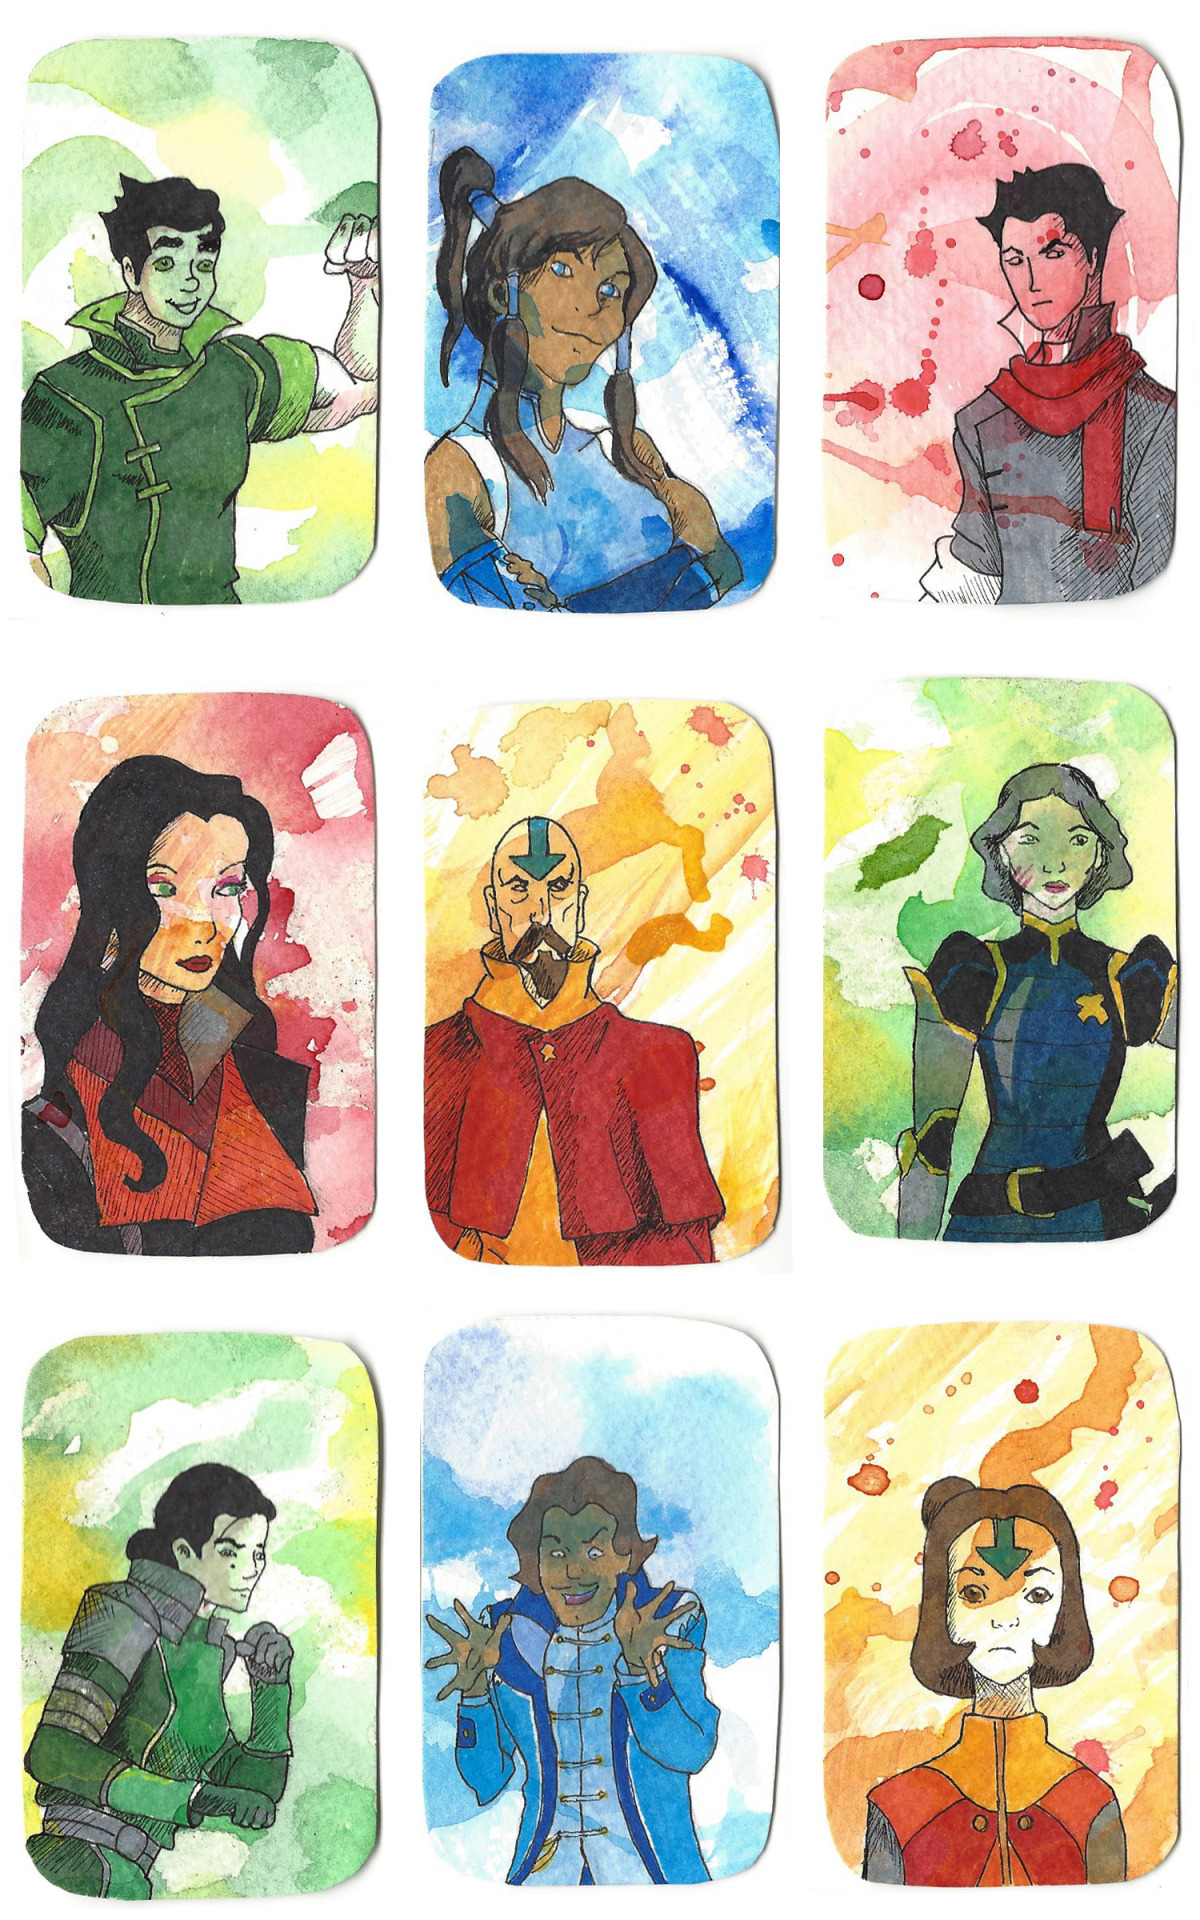 I've been making art cards recently as gifts for my friends before we graduate this spring. Here's some from the Legend of Korra!Watercolor backgrounds with marker drawings on top.